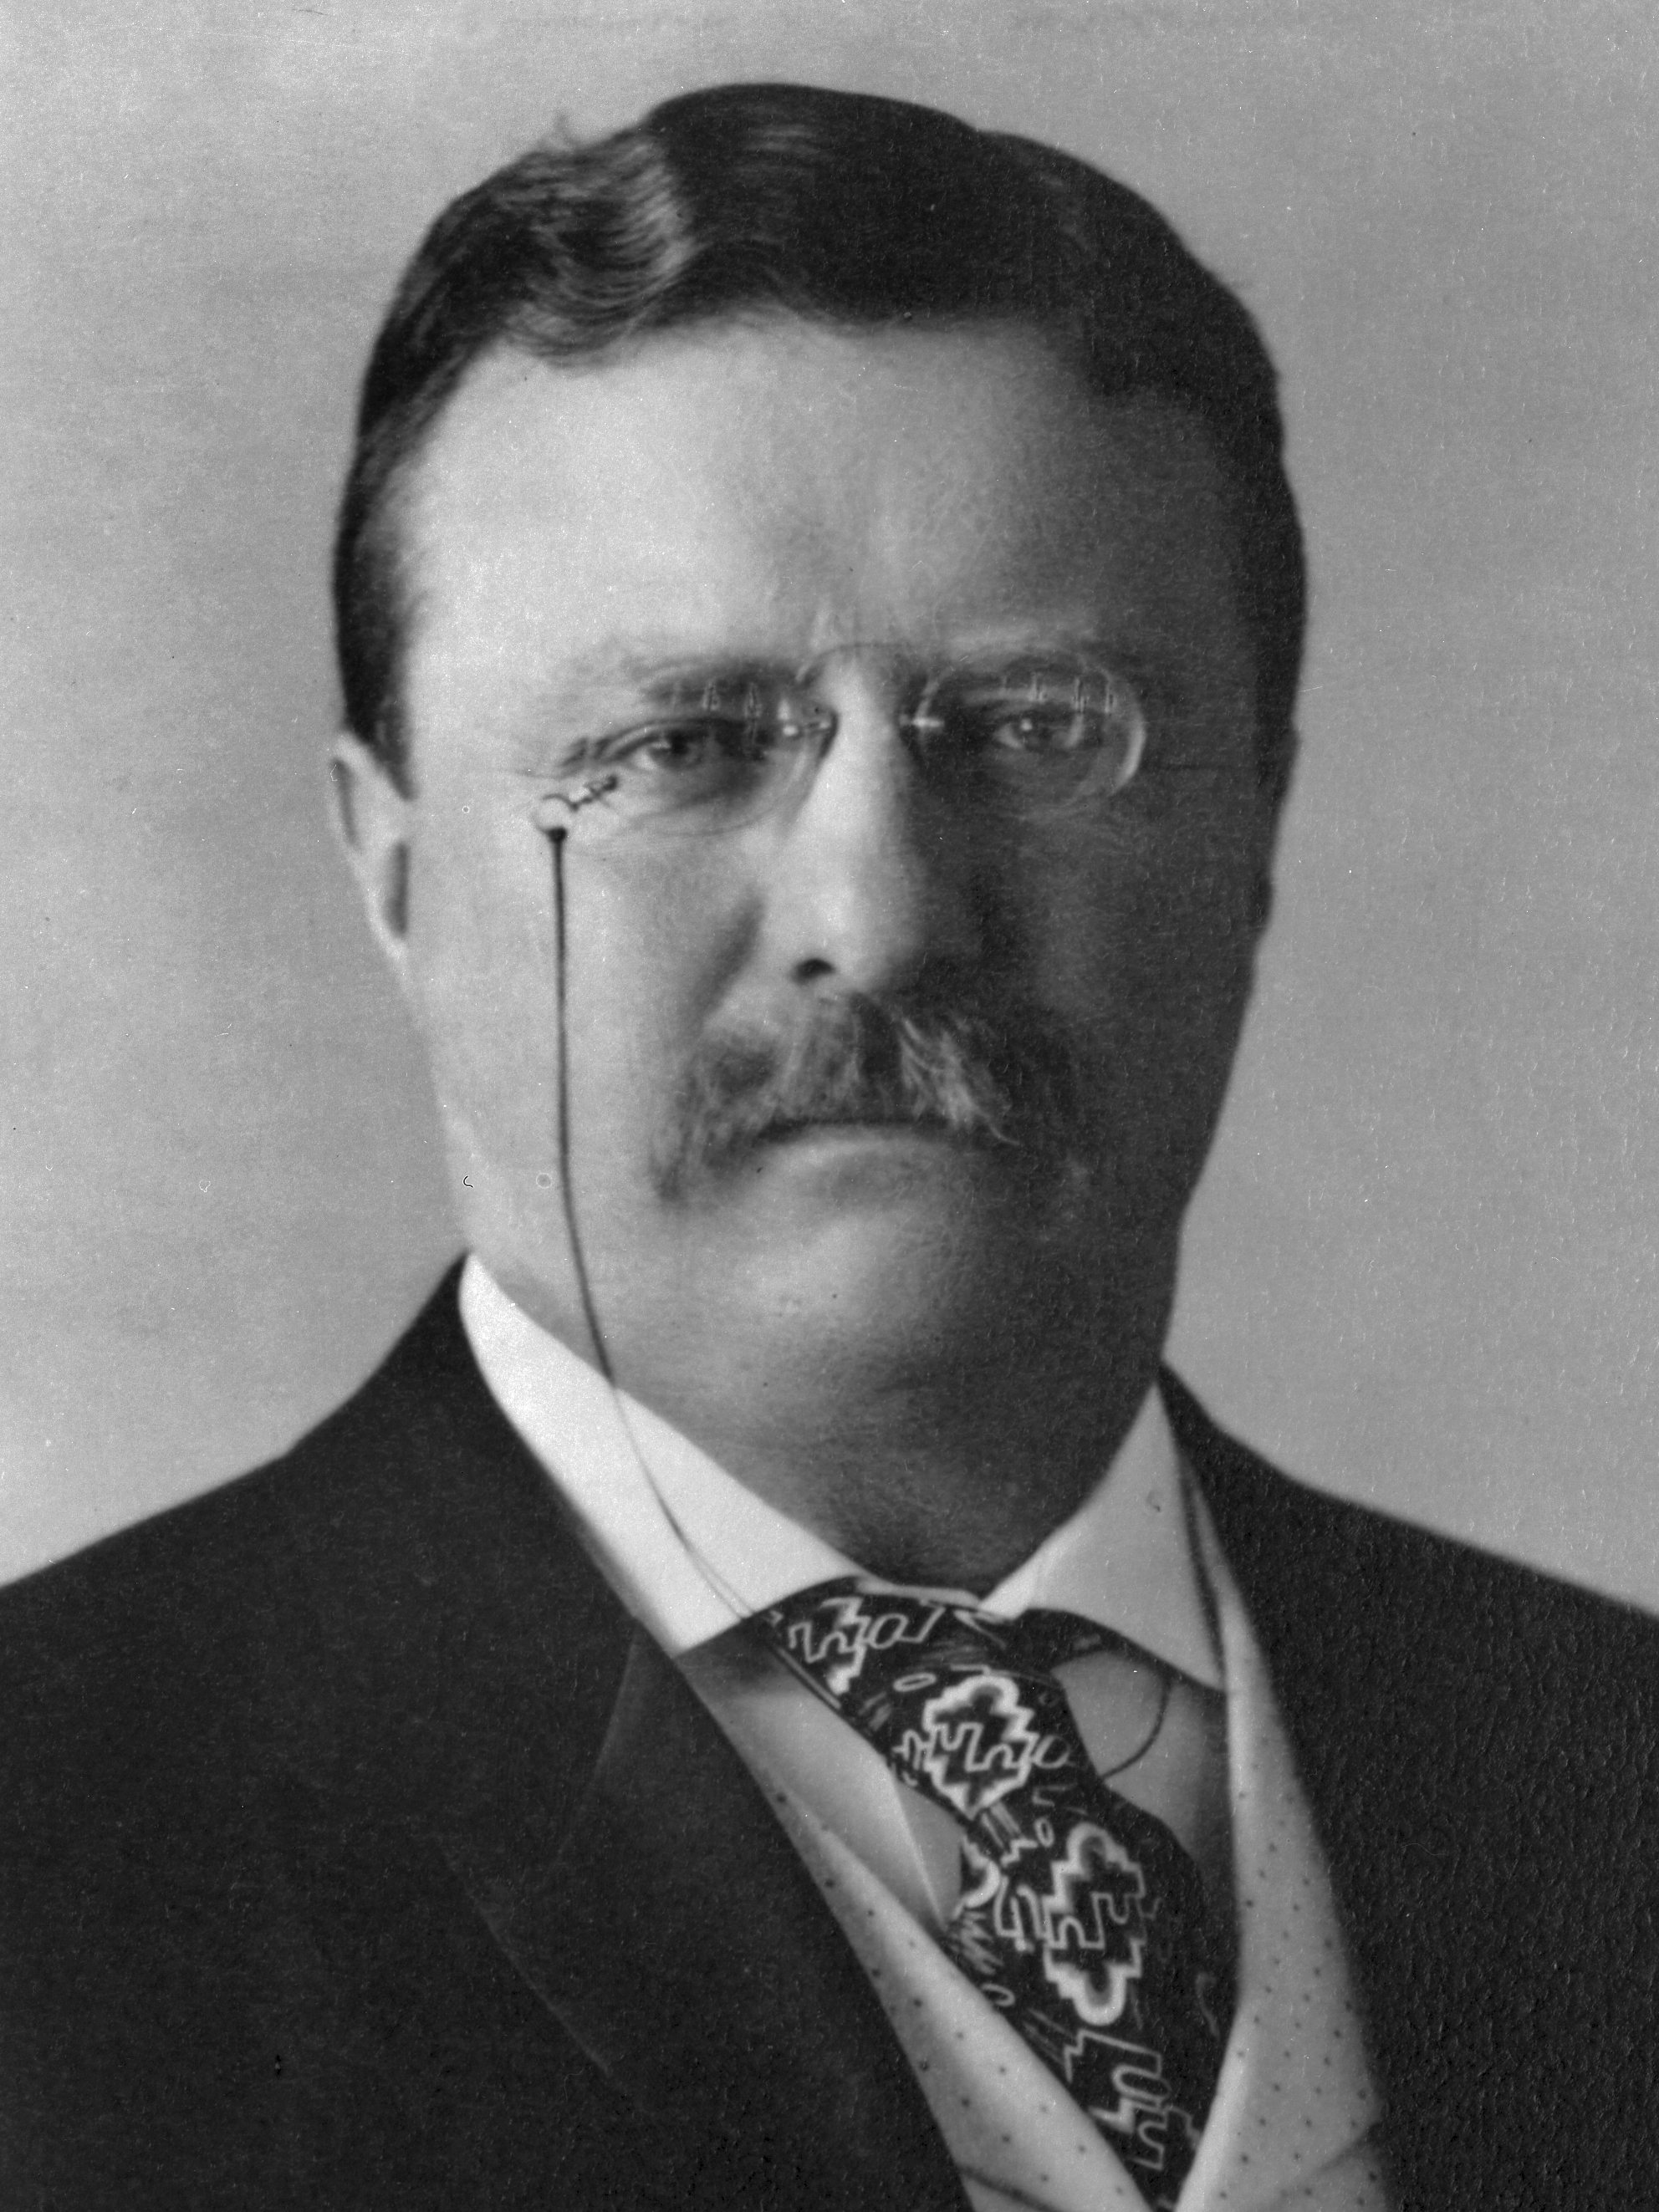 theodore roosevelt as one of the best presidents in the history of the united states